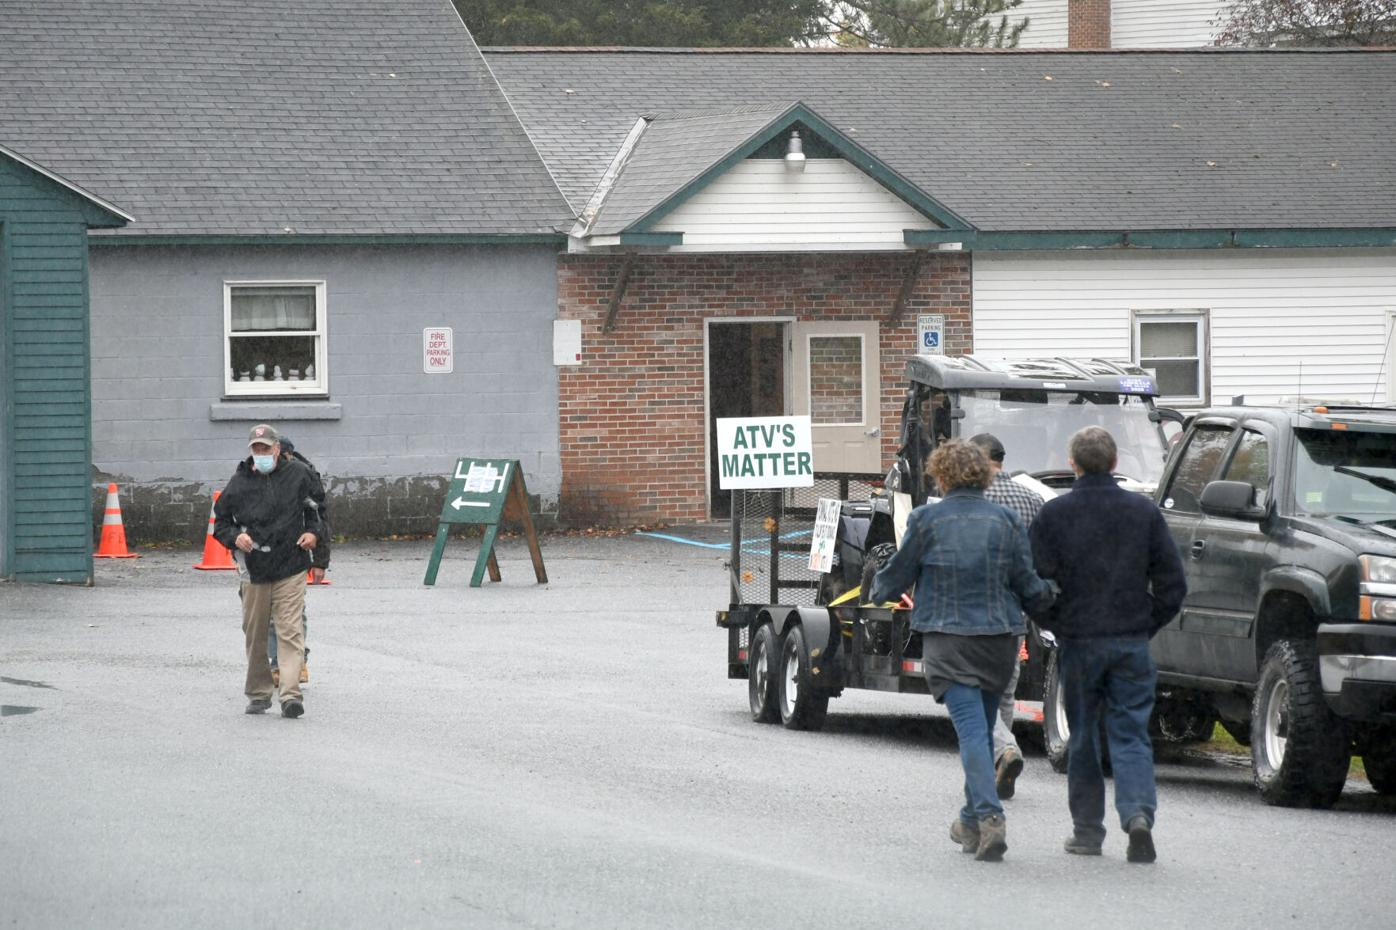 Pownal votes on ATV ordinance